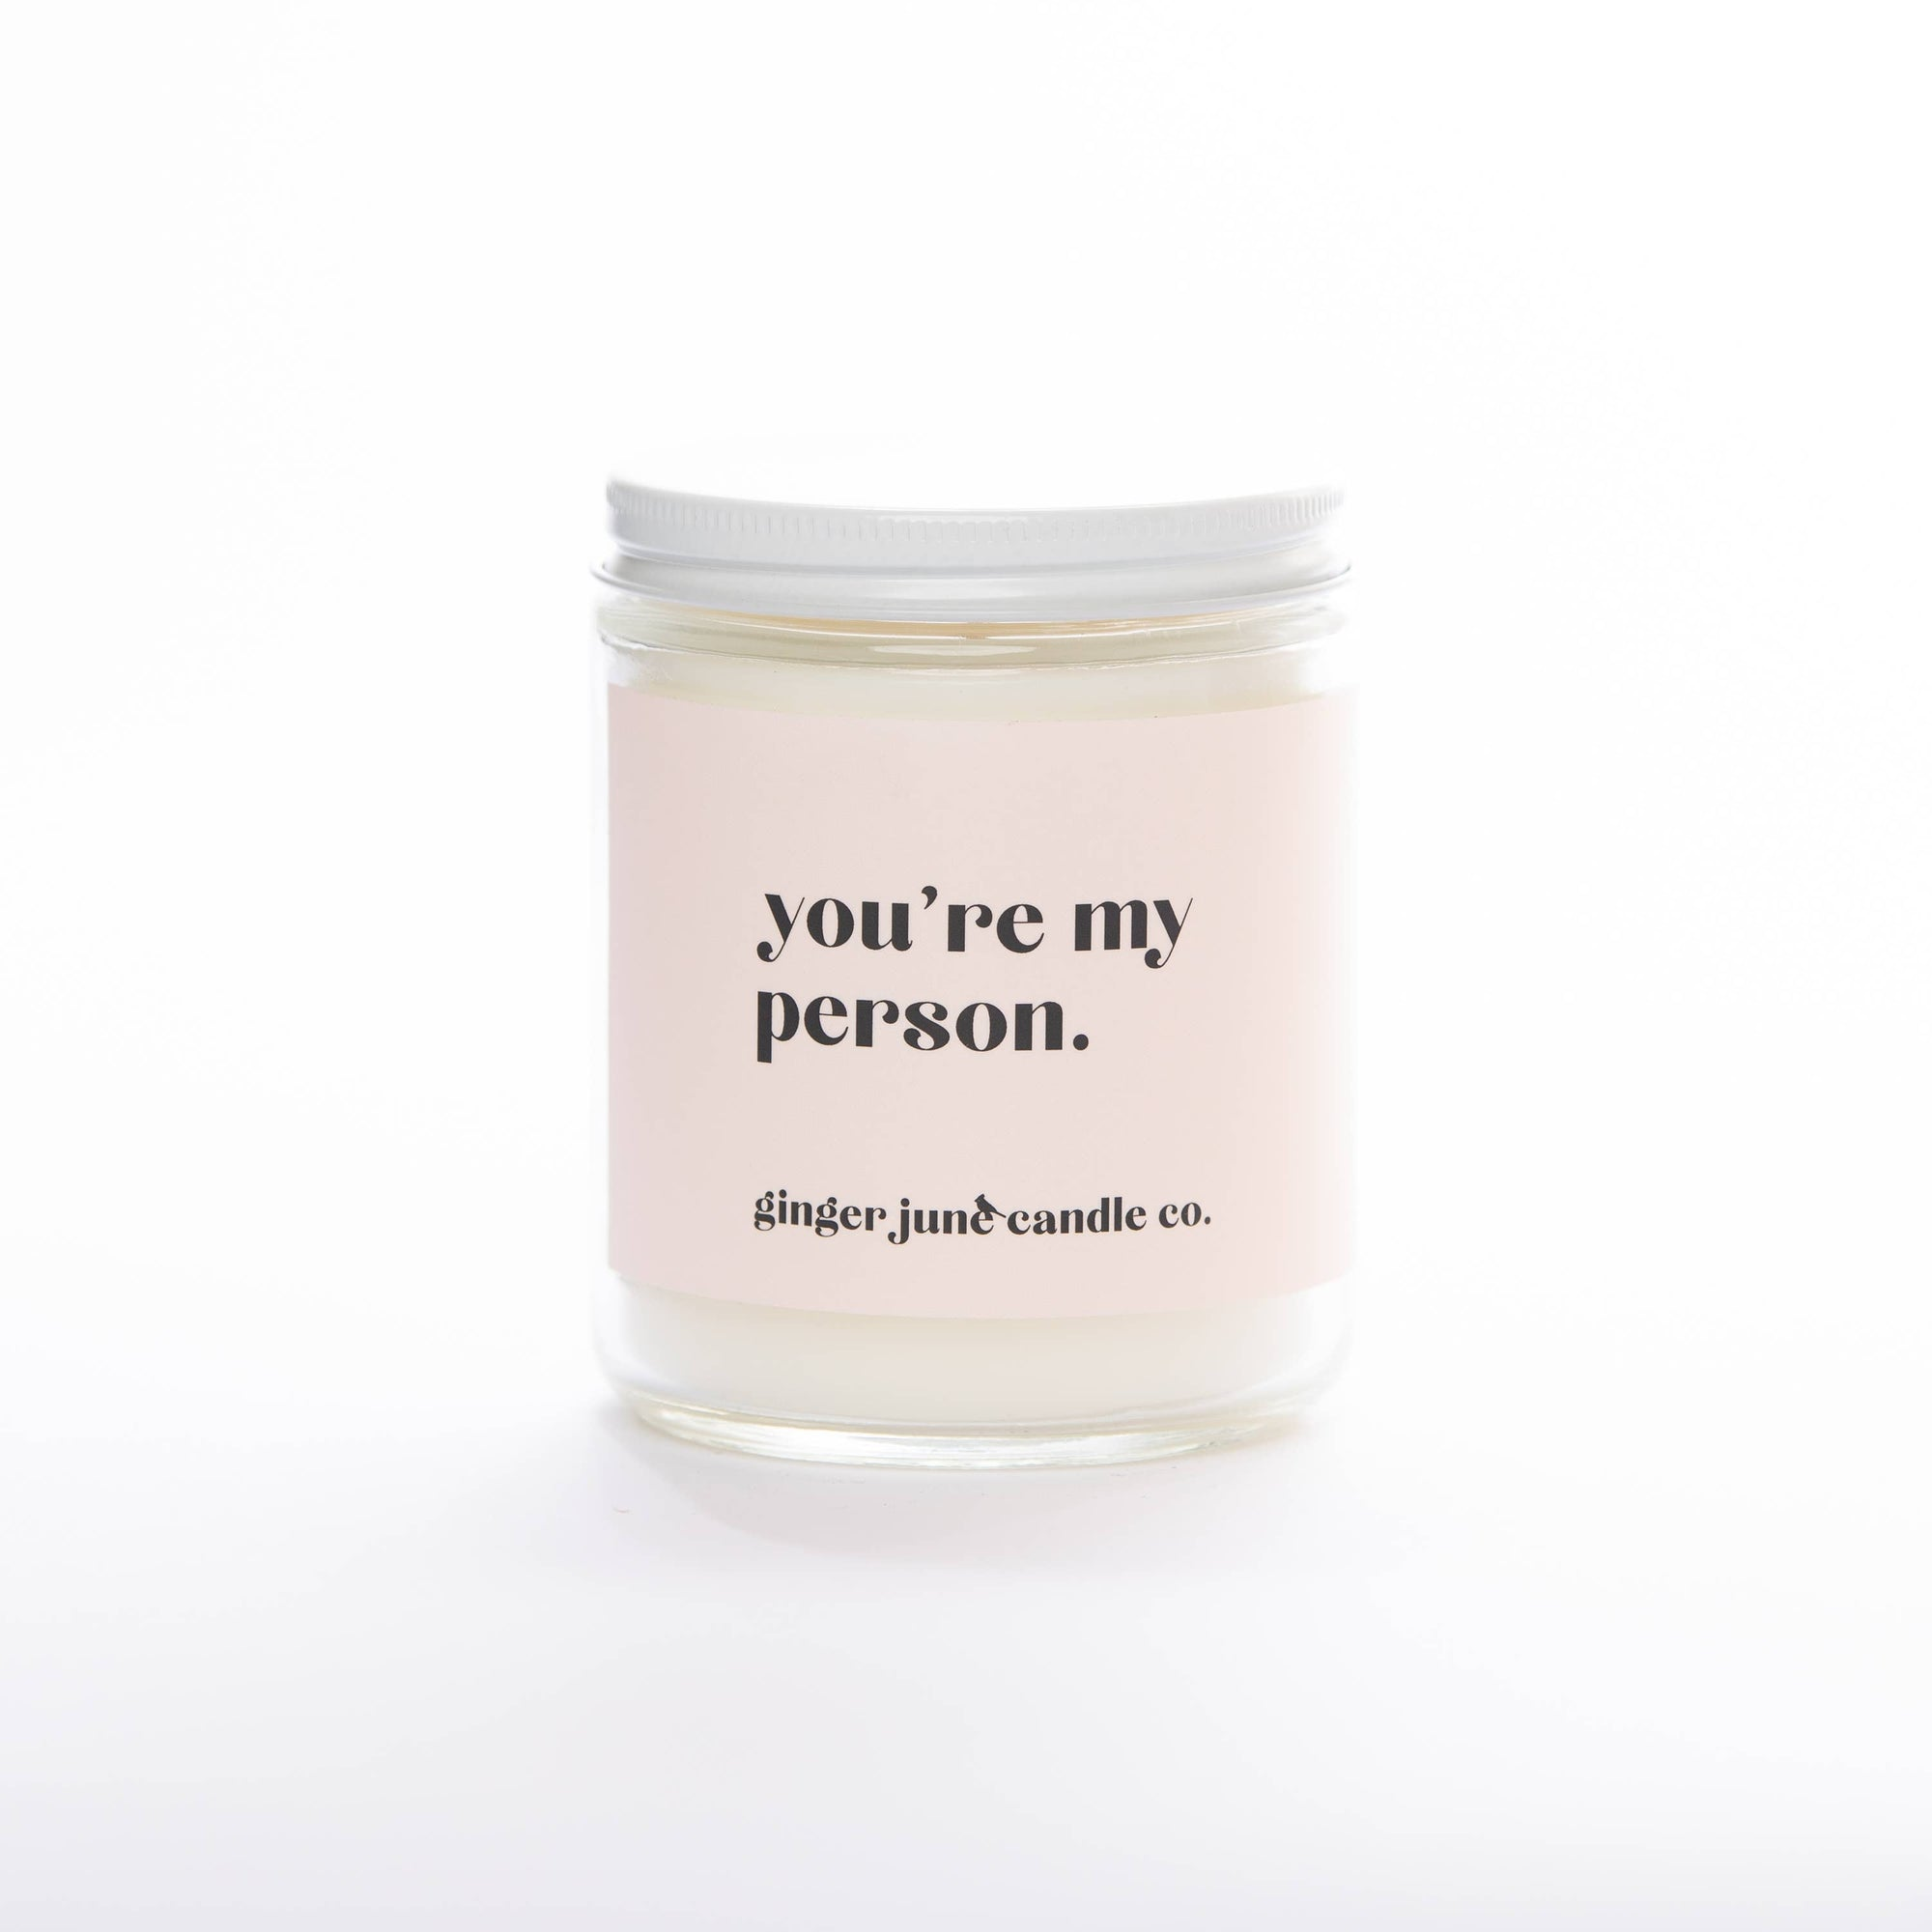 YOU'RE MY PERSON • NON TOXIC SOY CANDLE